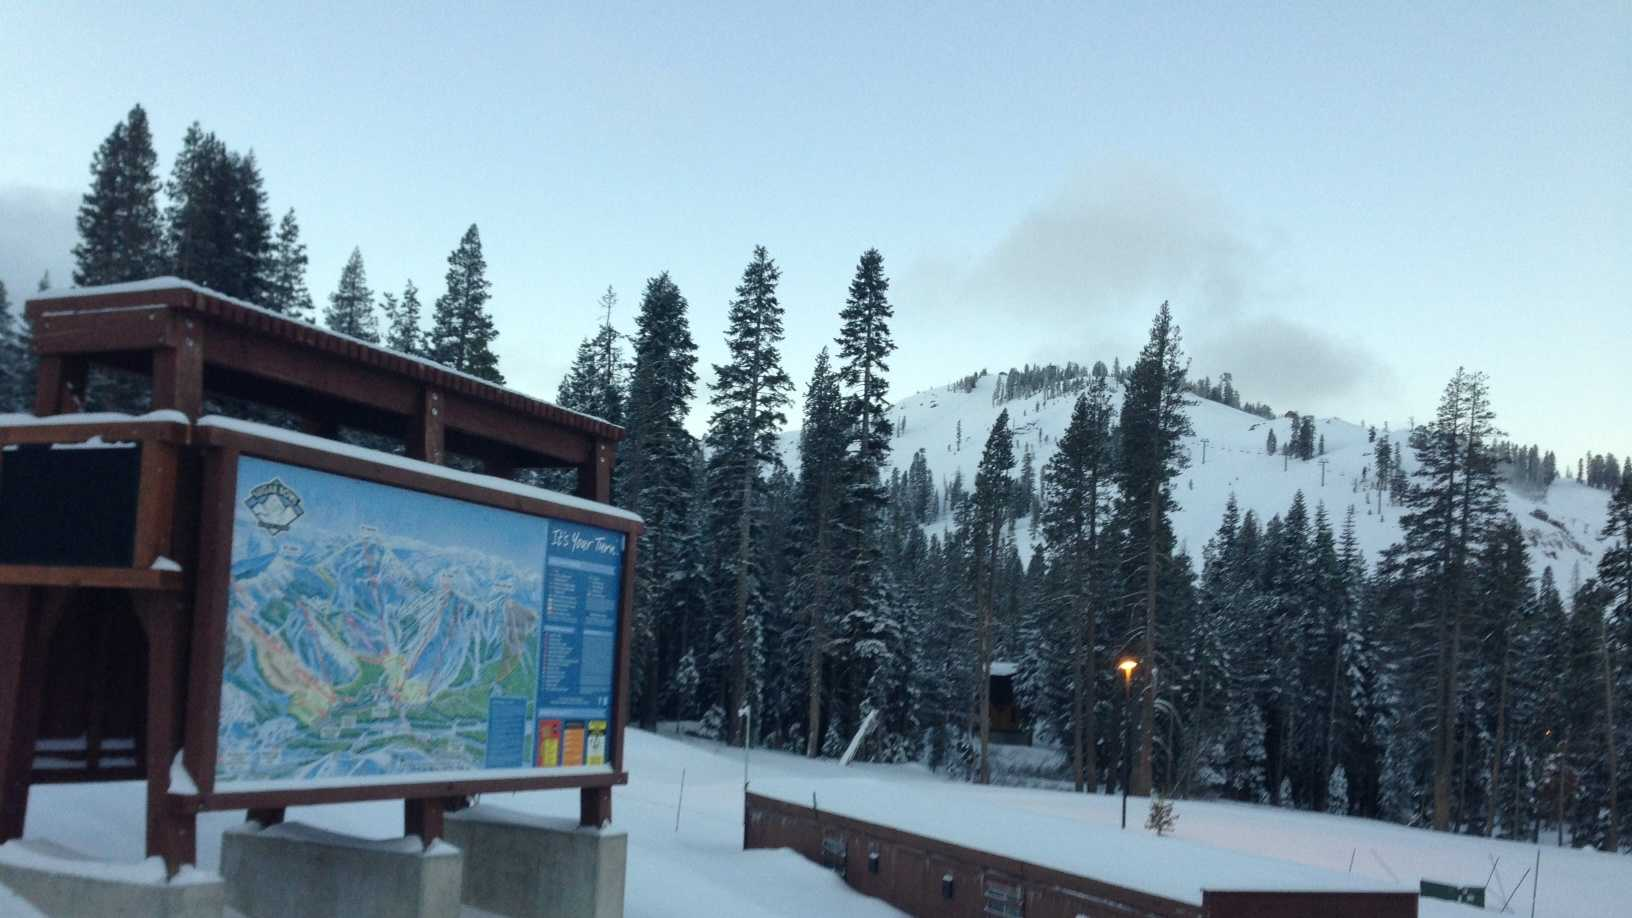 Sugar Bowl reported ten inches of snow at the base and over a foot of new snow at the summit.